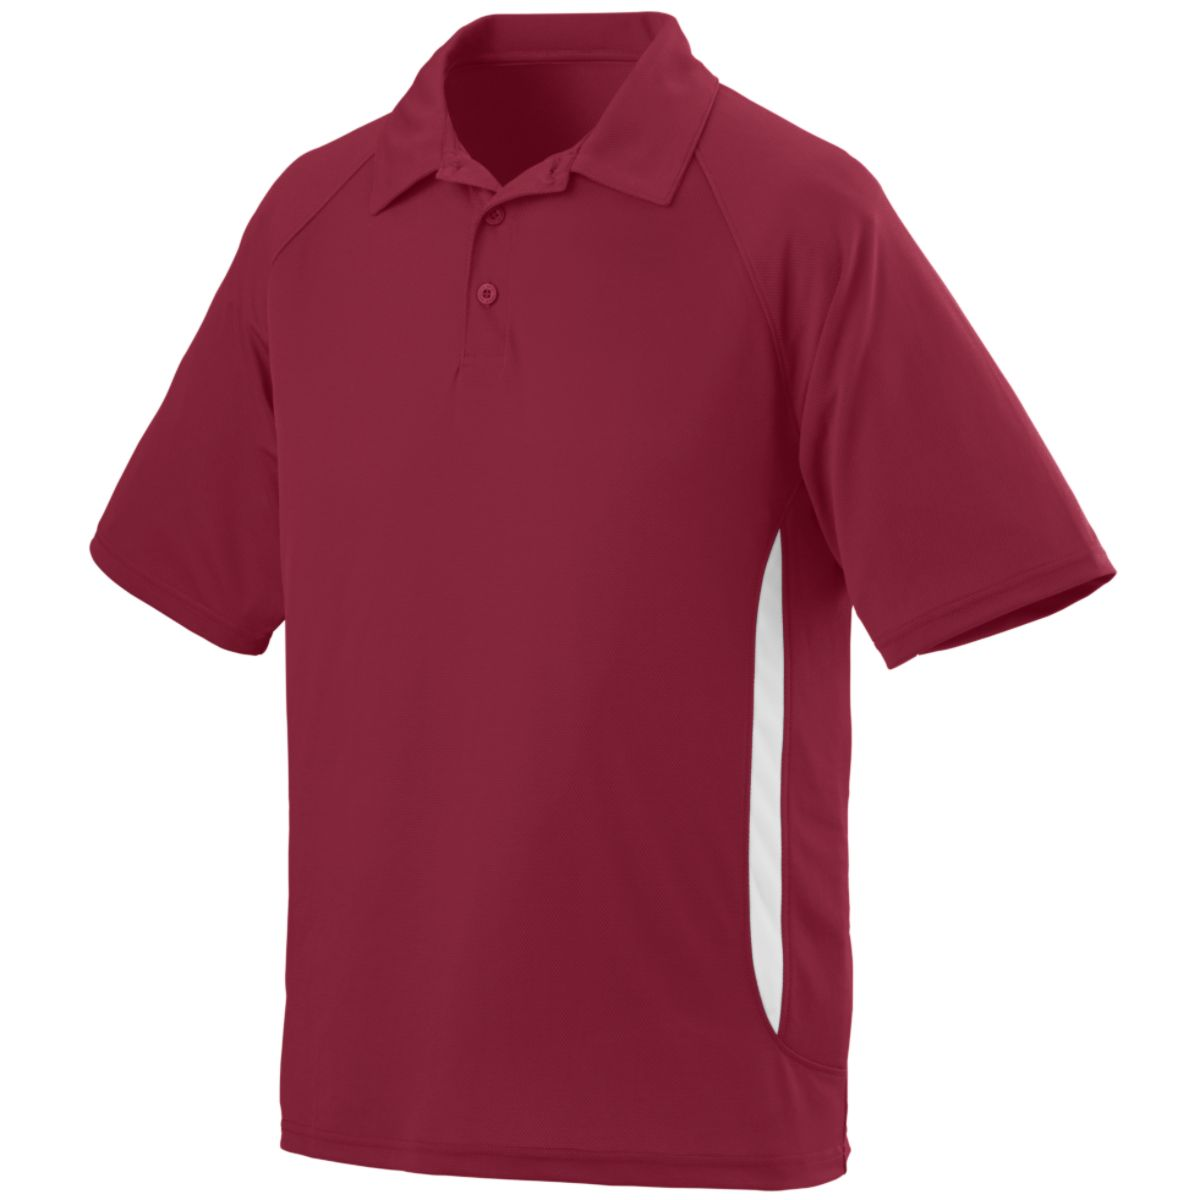 Augusta Mission Sport Shirt Crdl/Whi L - image 1 of 1